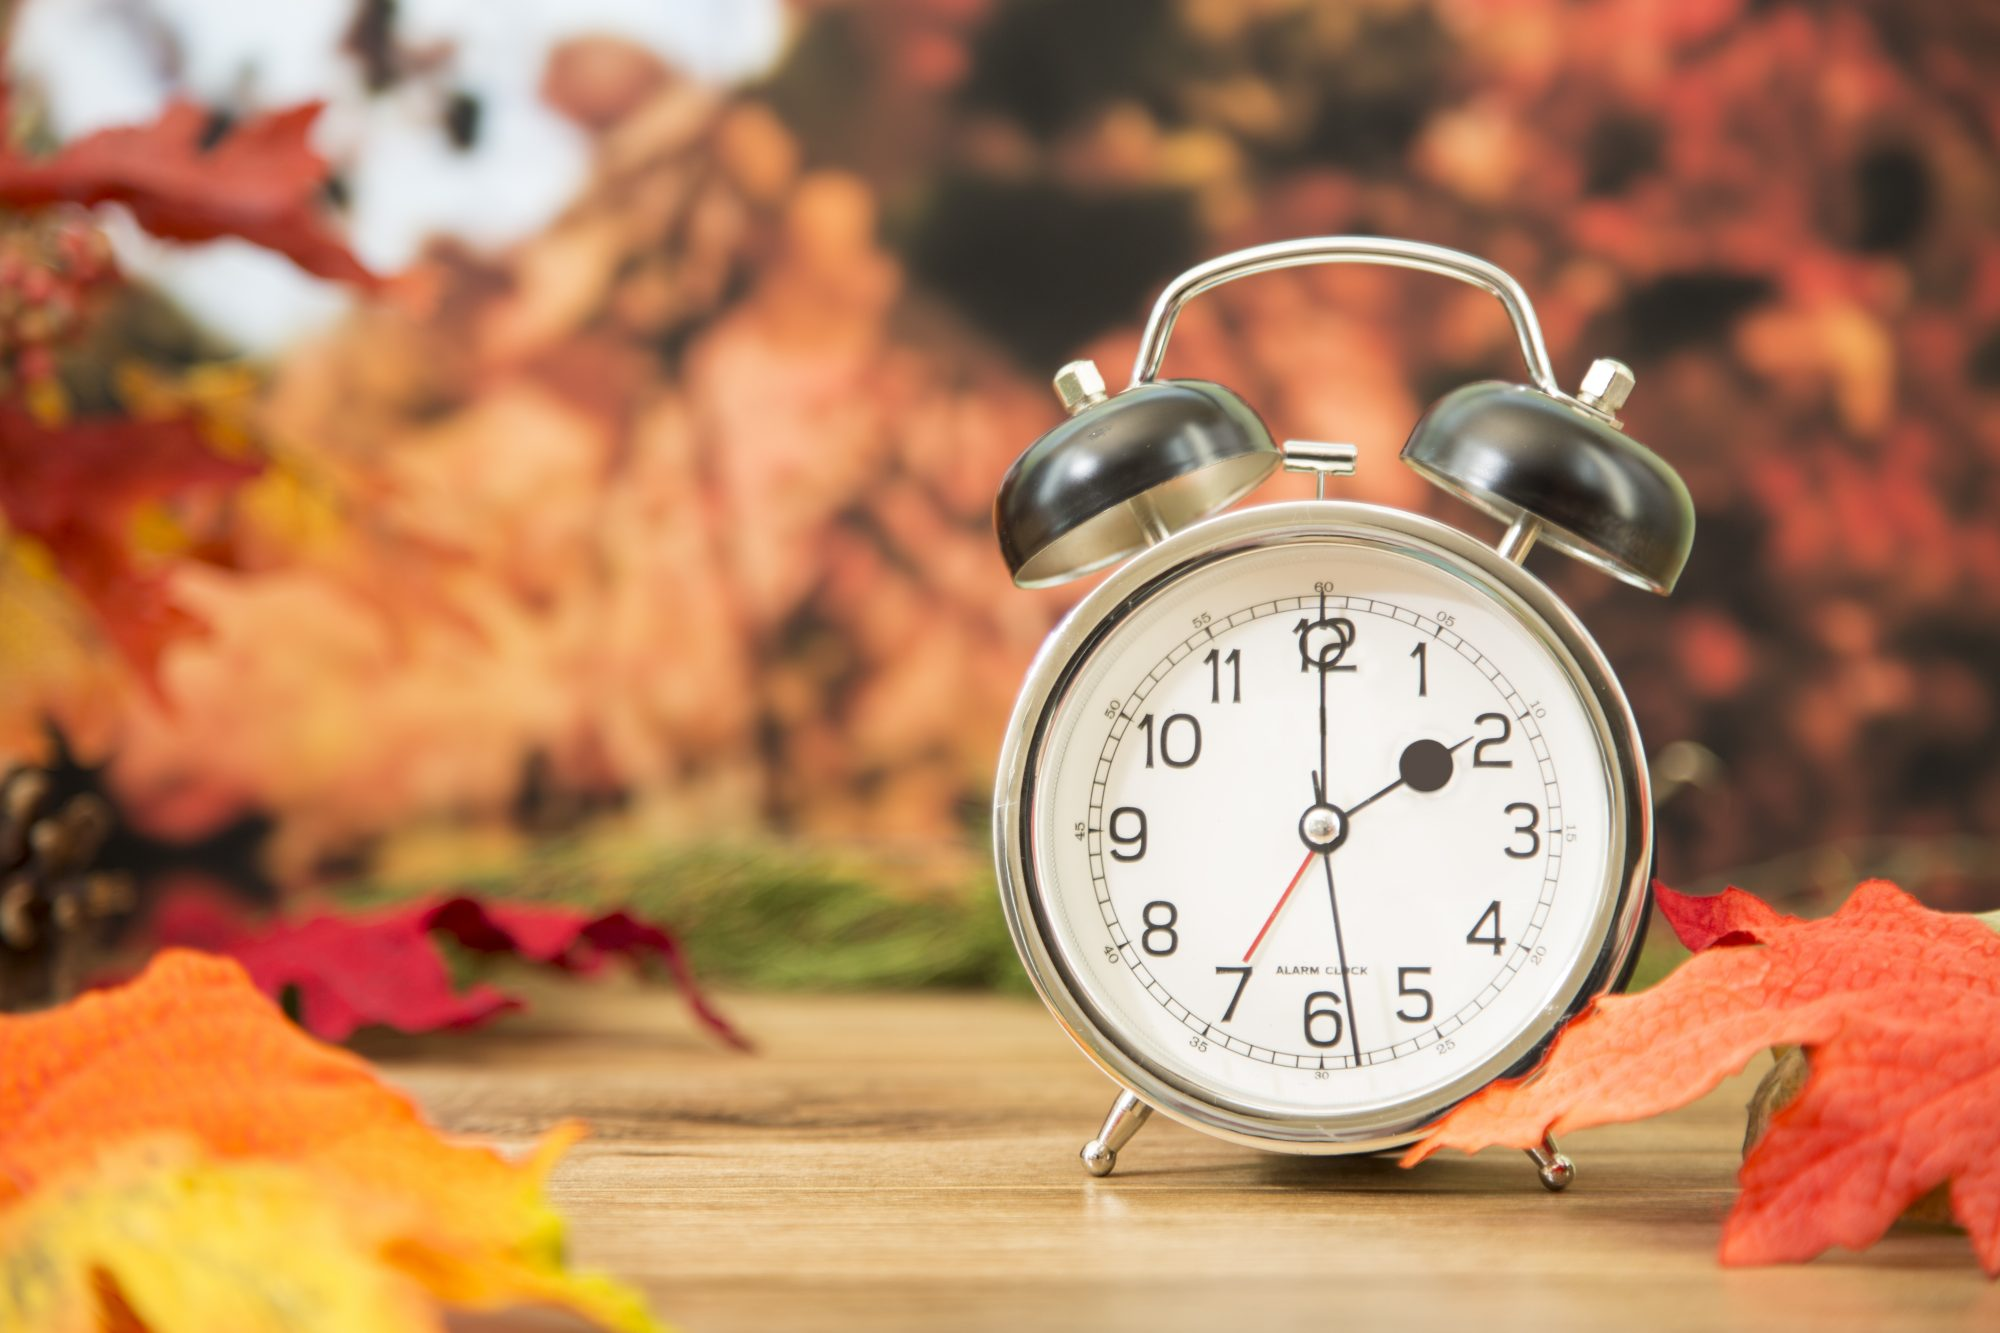 daylight-savings-autumn-clock-time